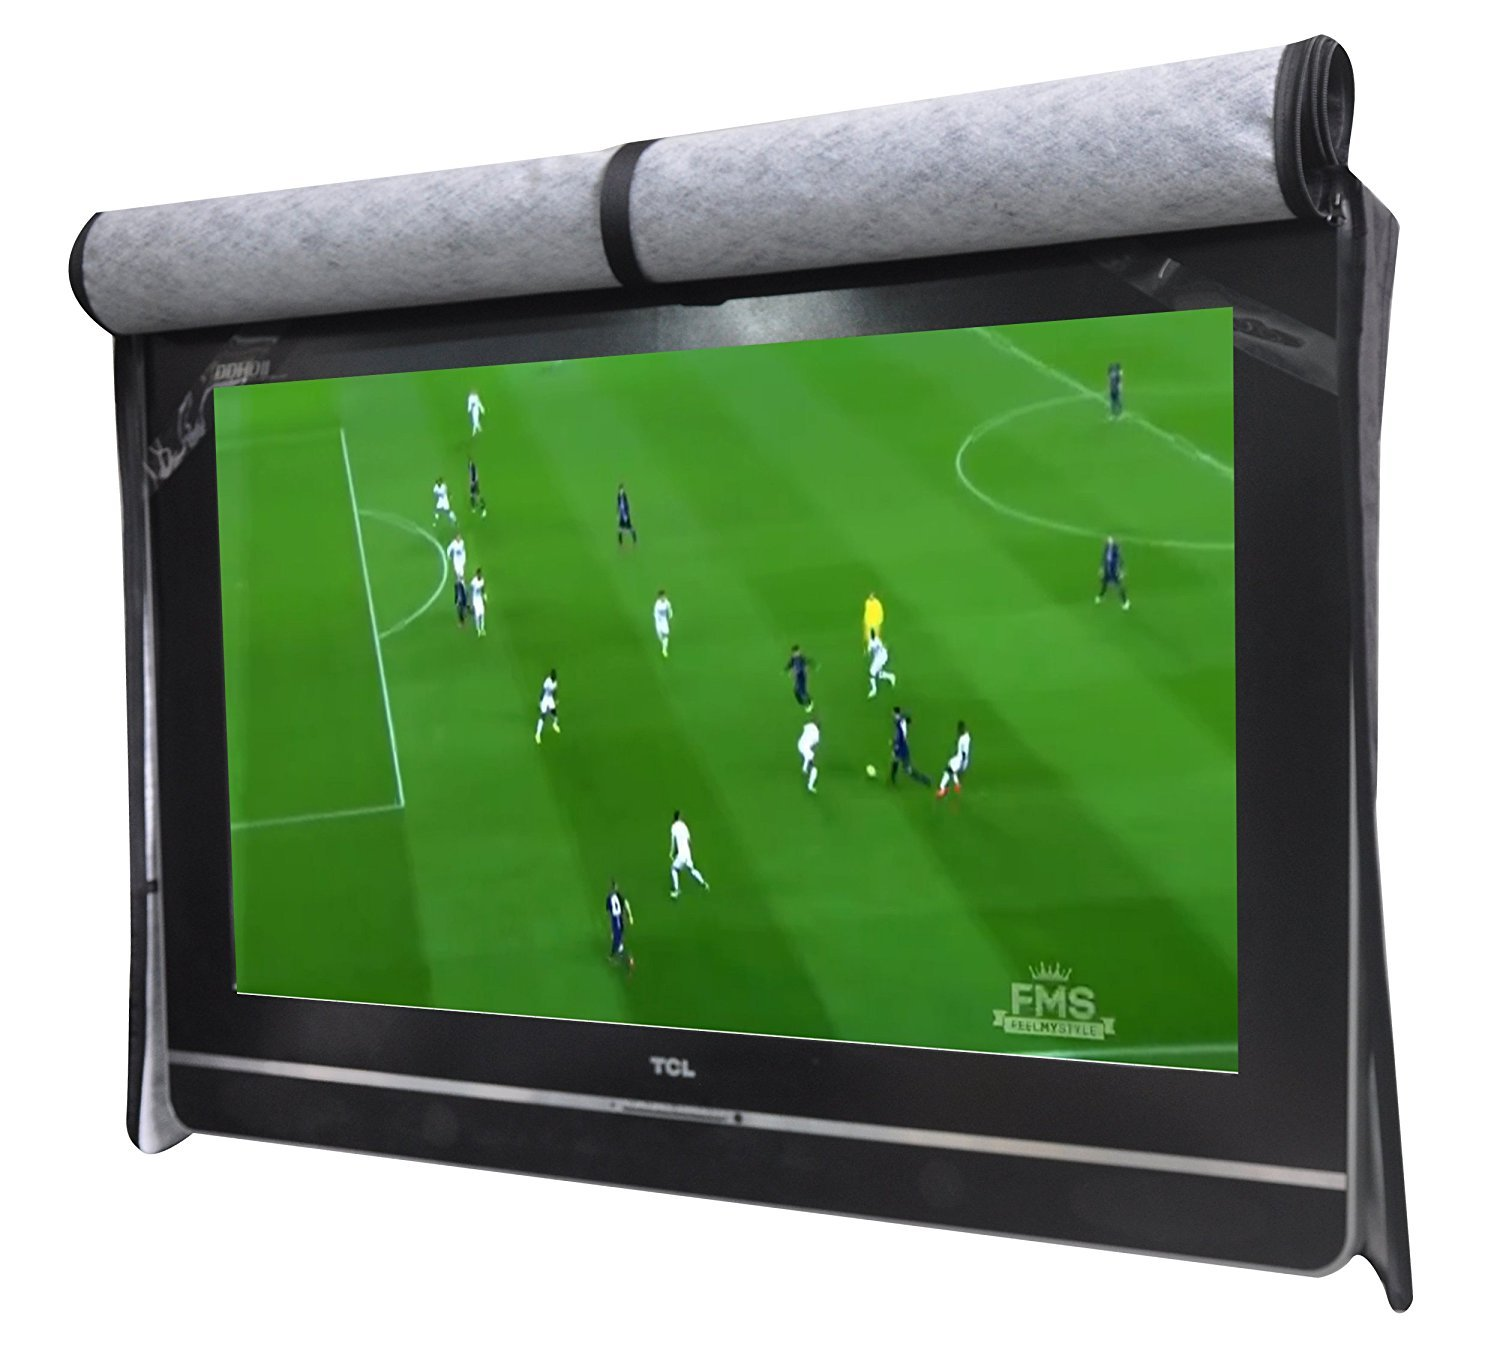 A1Cover Outdoor 55'' TV SET Cover ,Scratch Resistant liner protect LED Screen best-Compatible with Standard Mounts and Stands (Black)